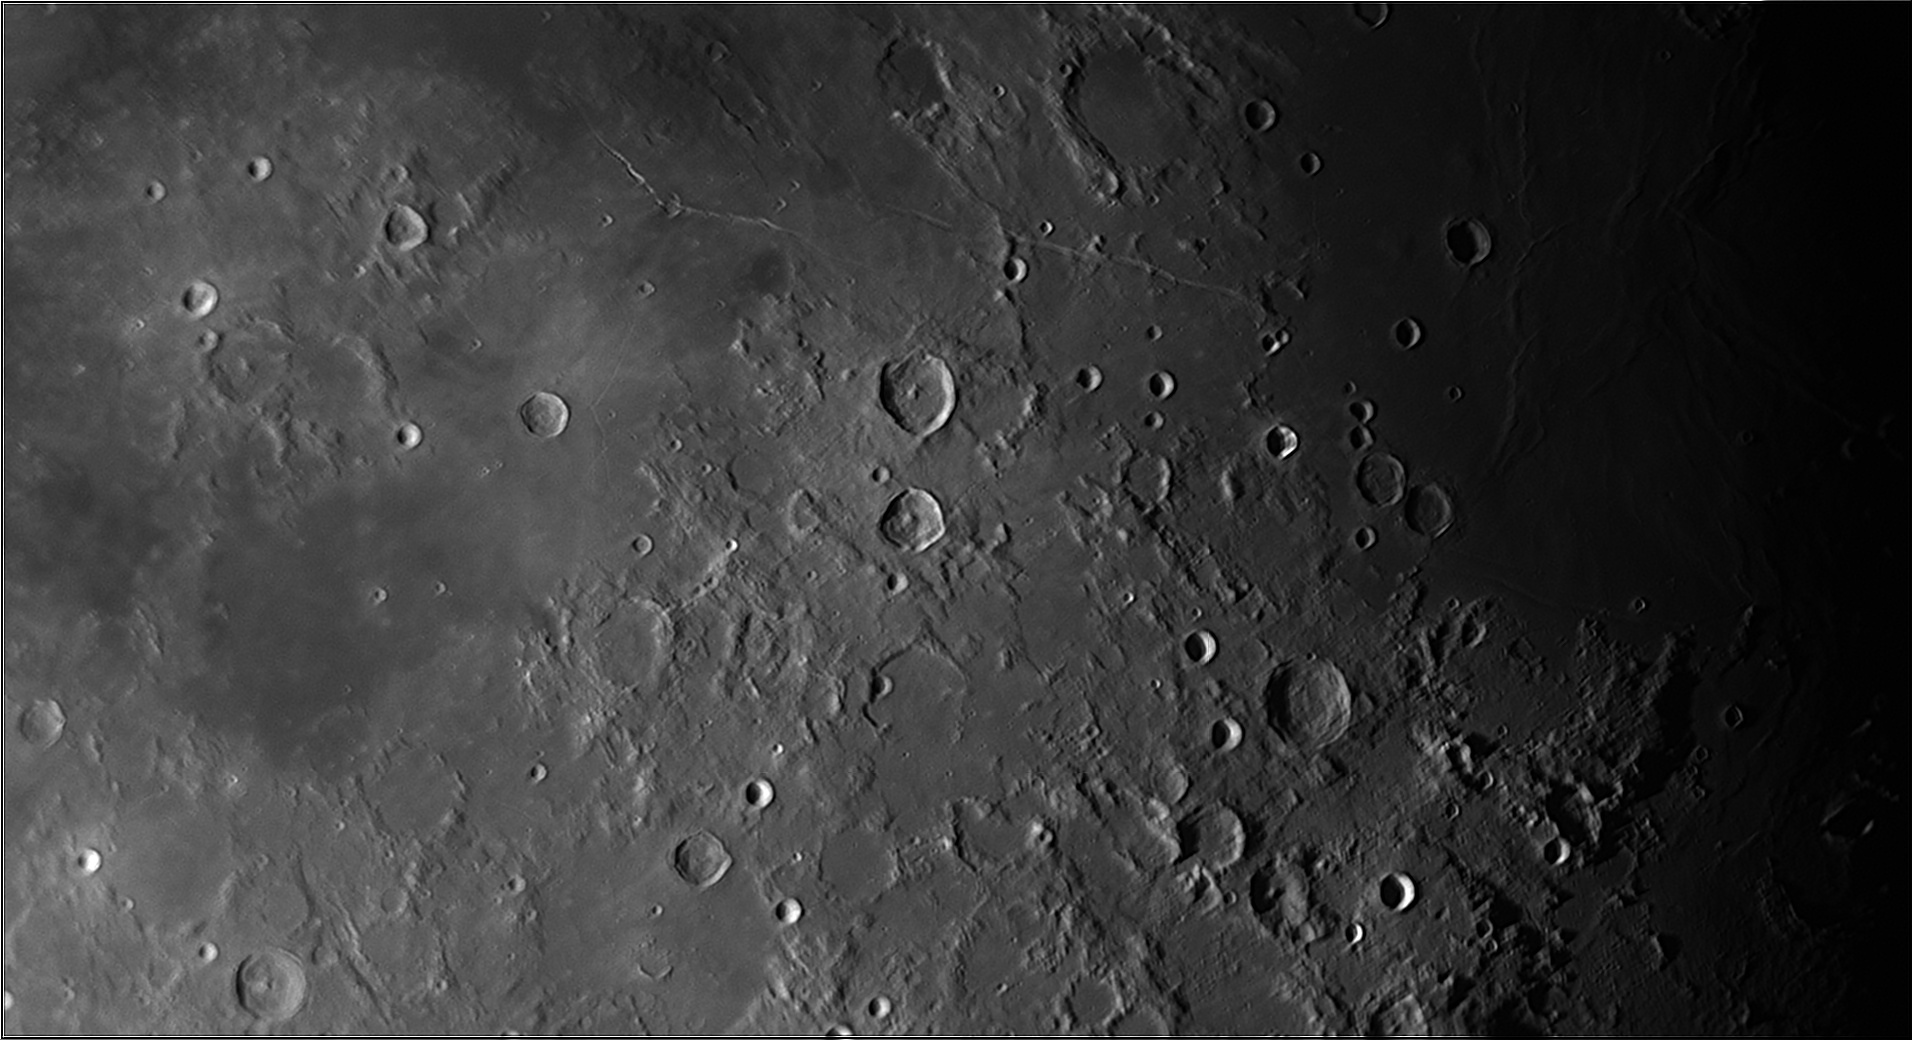 5dd1bdca75726_Moon_074136_171119_ZWOASI290MM_IR_650nm_AS_P30_lapl4_ap953.jpg.720520428f3f79188f279e190f2d18ae.jpg